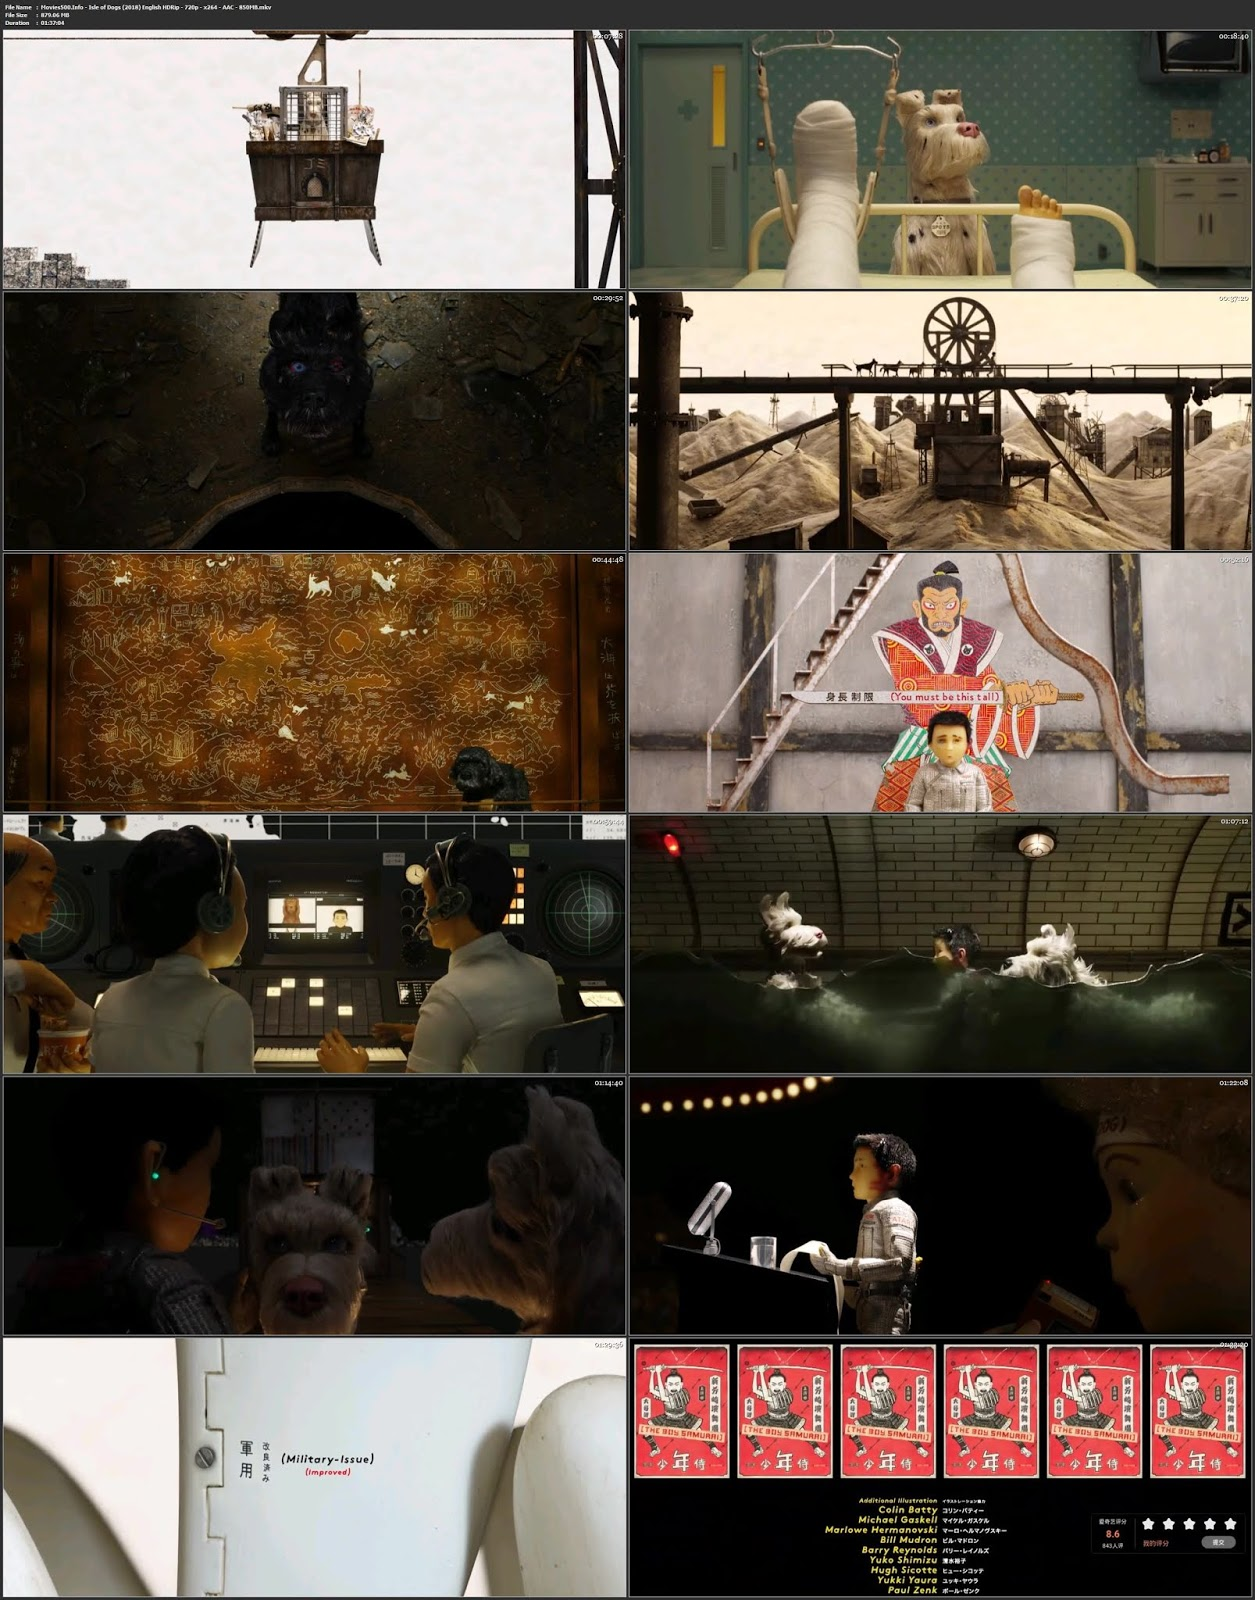 Isle of Dogs 2018 English Full Movie HDRip 720p 800MB